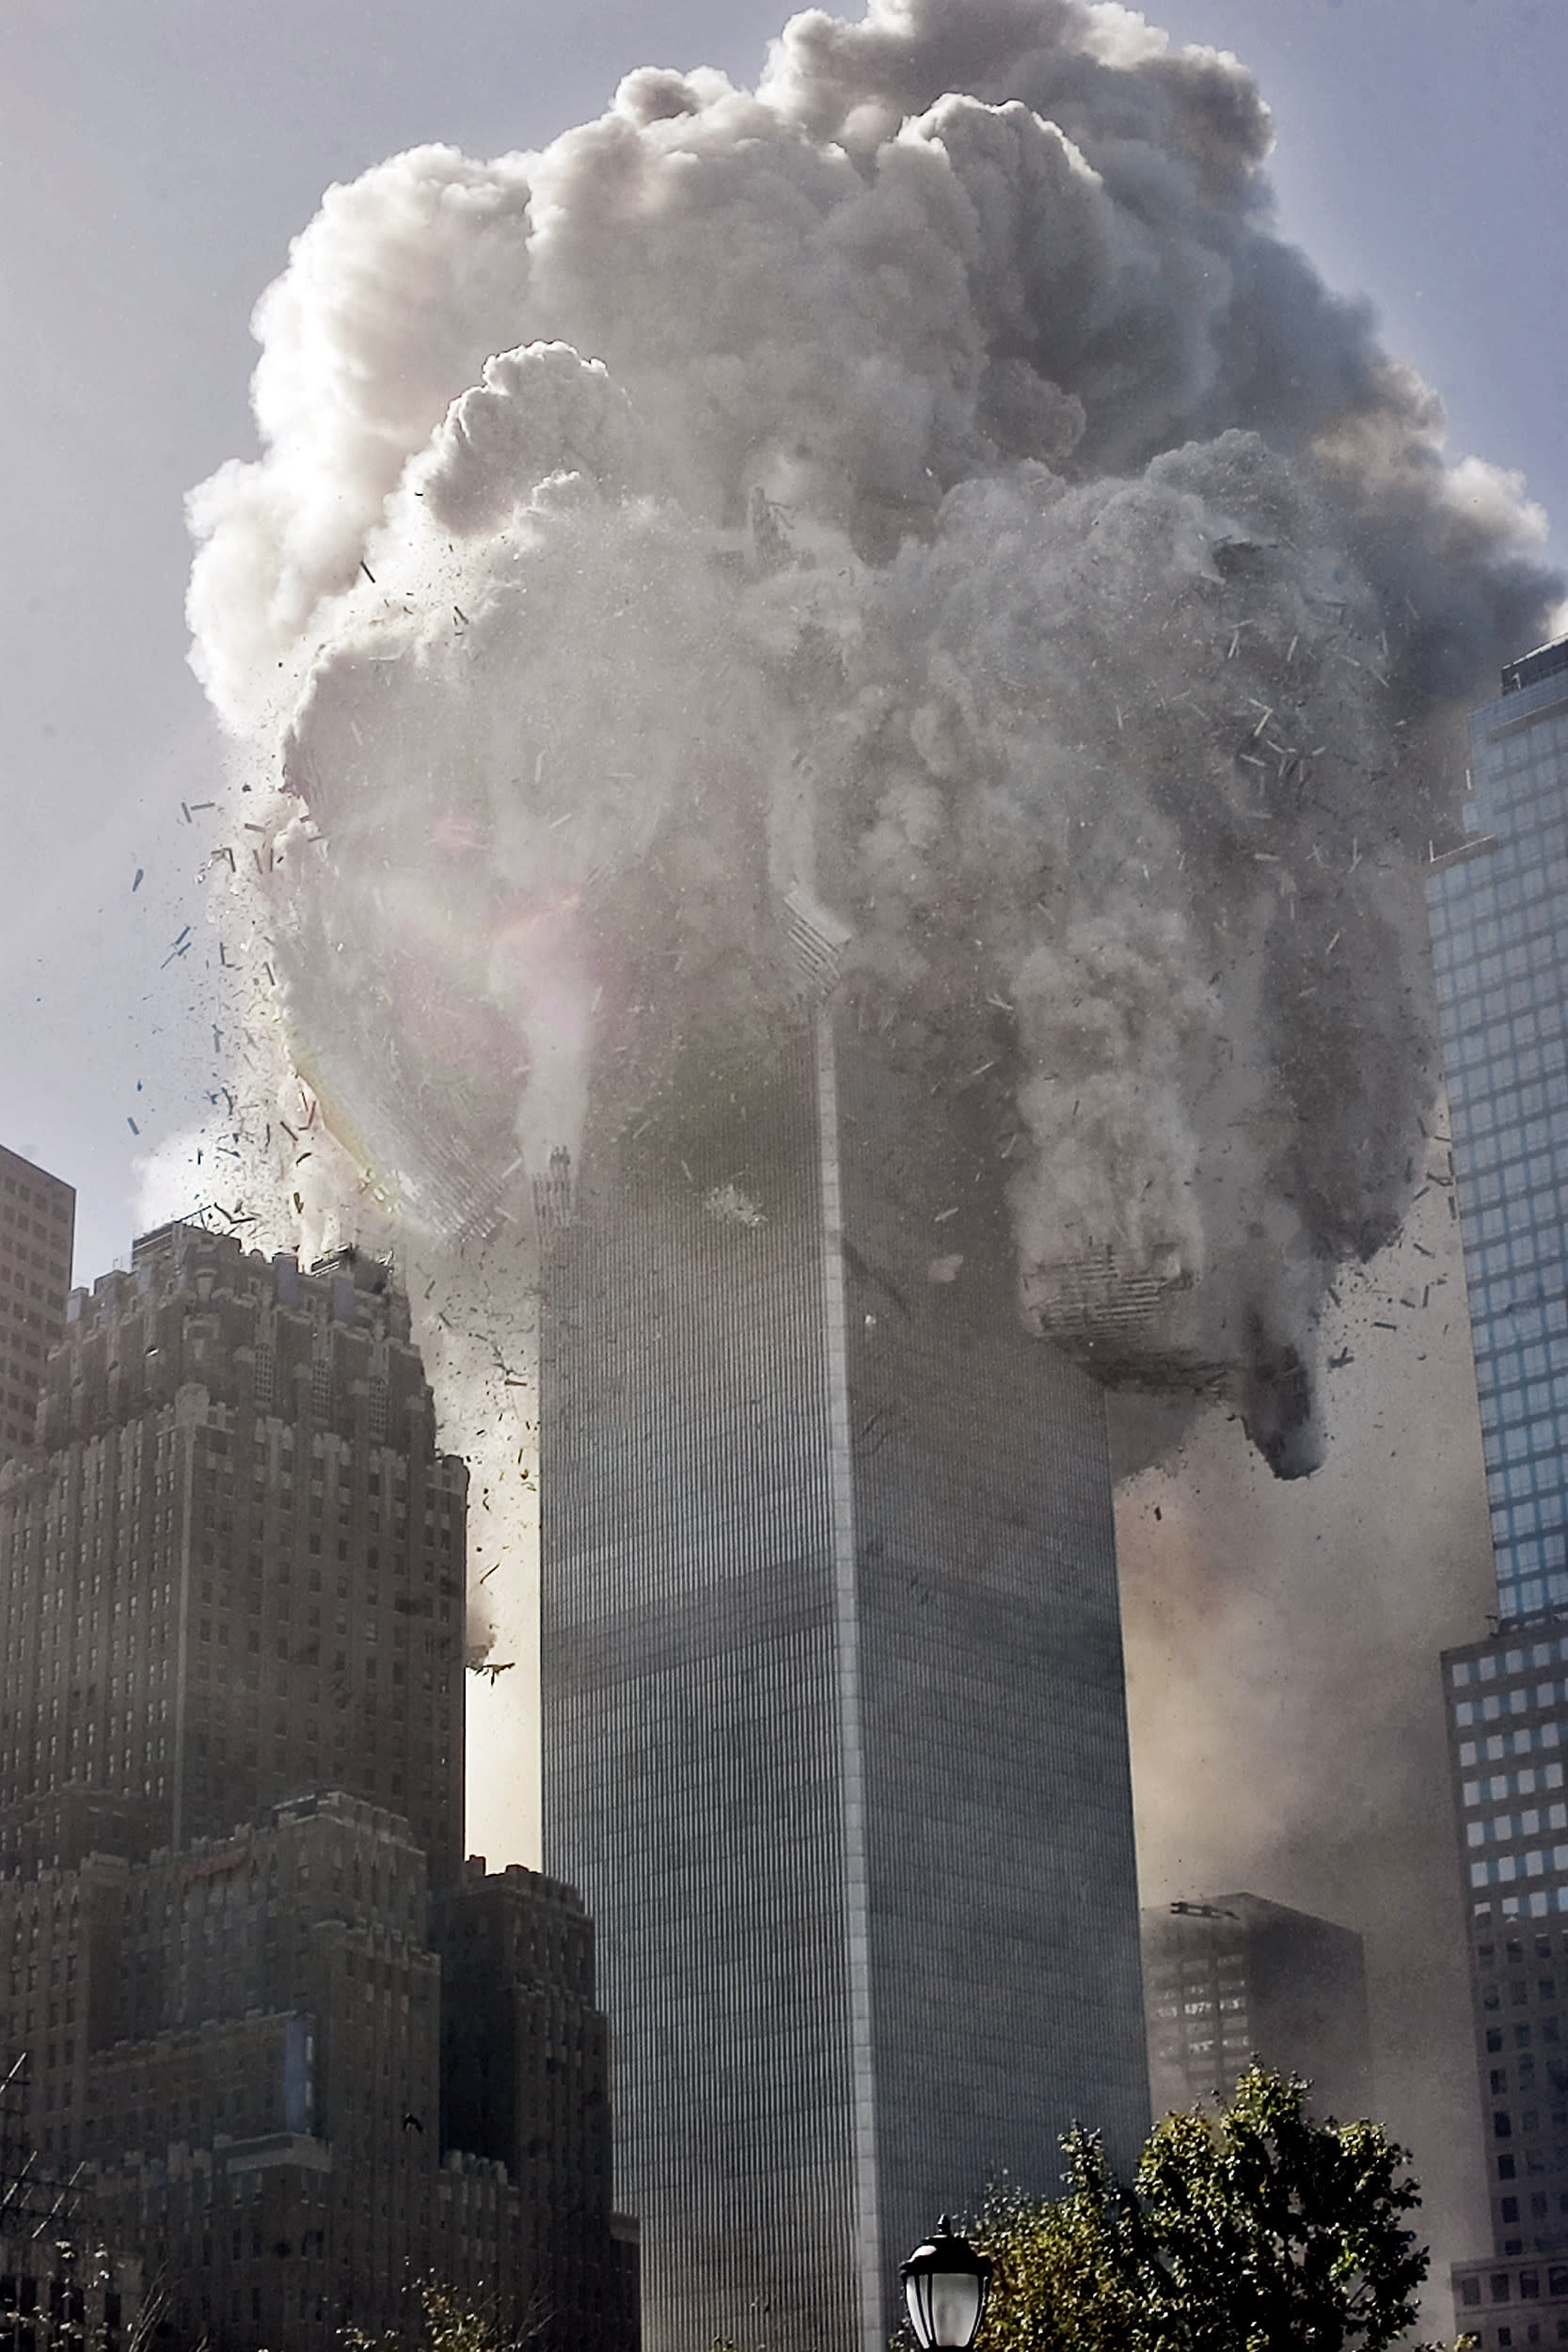 The north tower of New York's World Trade Center collapses after being struck by hijacked American Airlines Flt. 11, Tuesday, Sept. 11, 2001. (AP Photo Richard Drew)